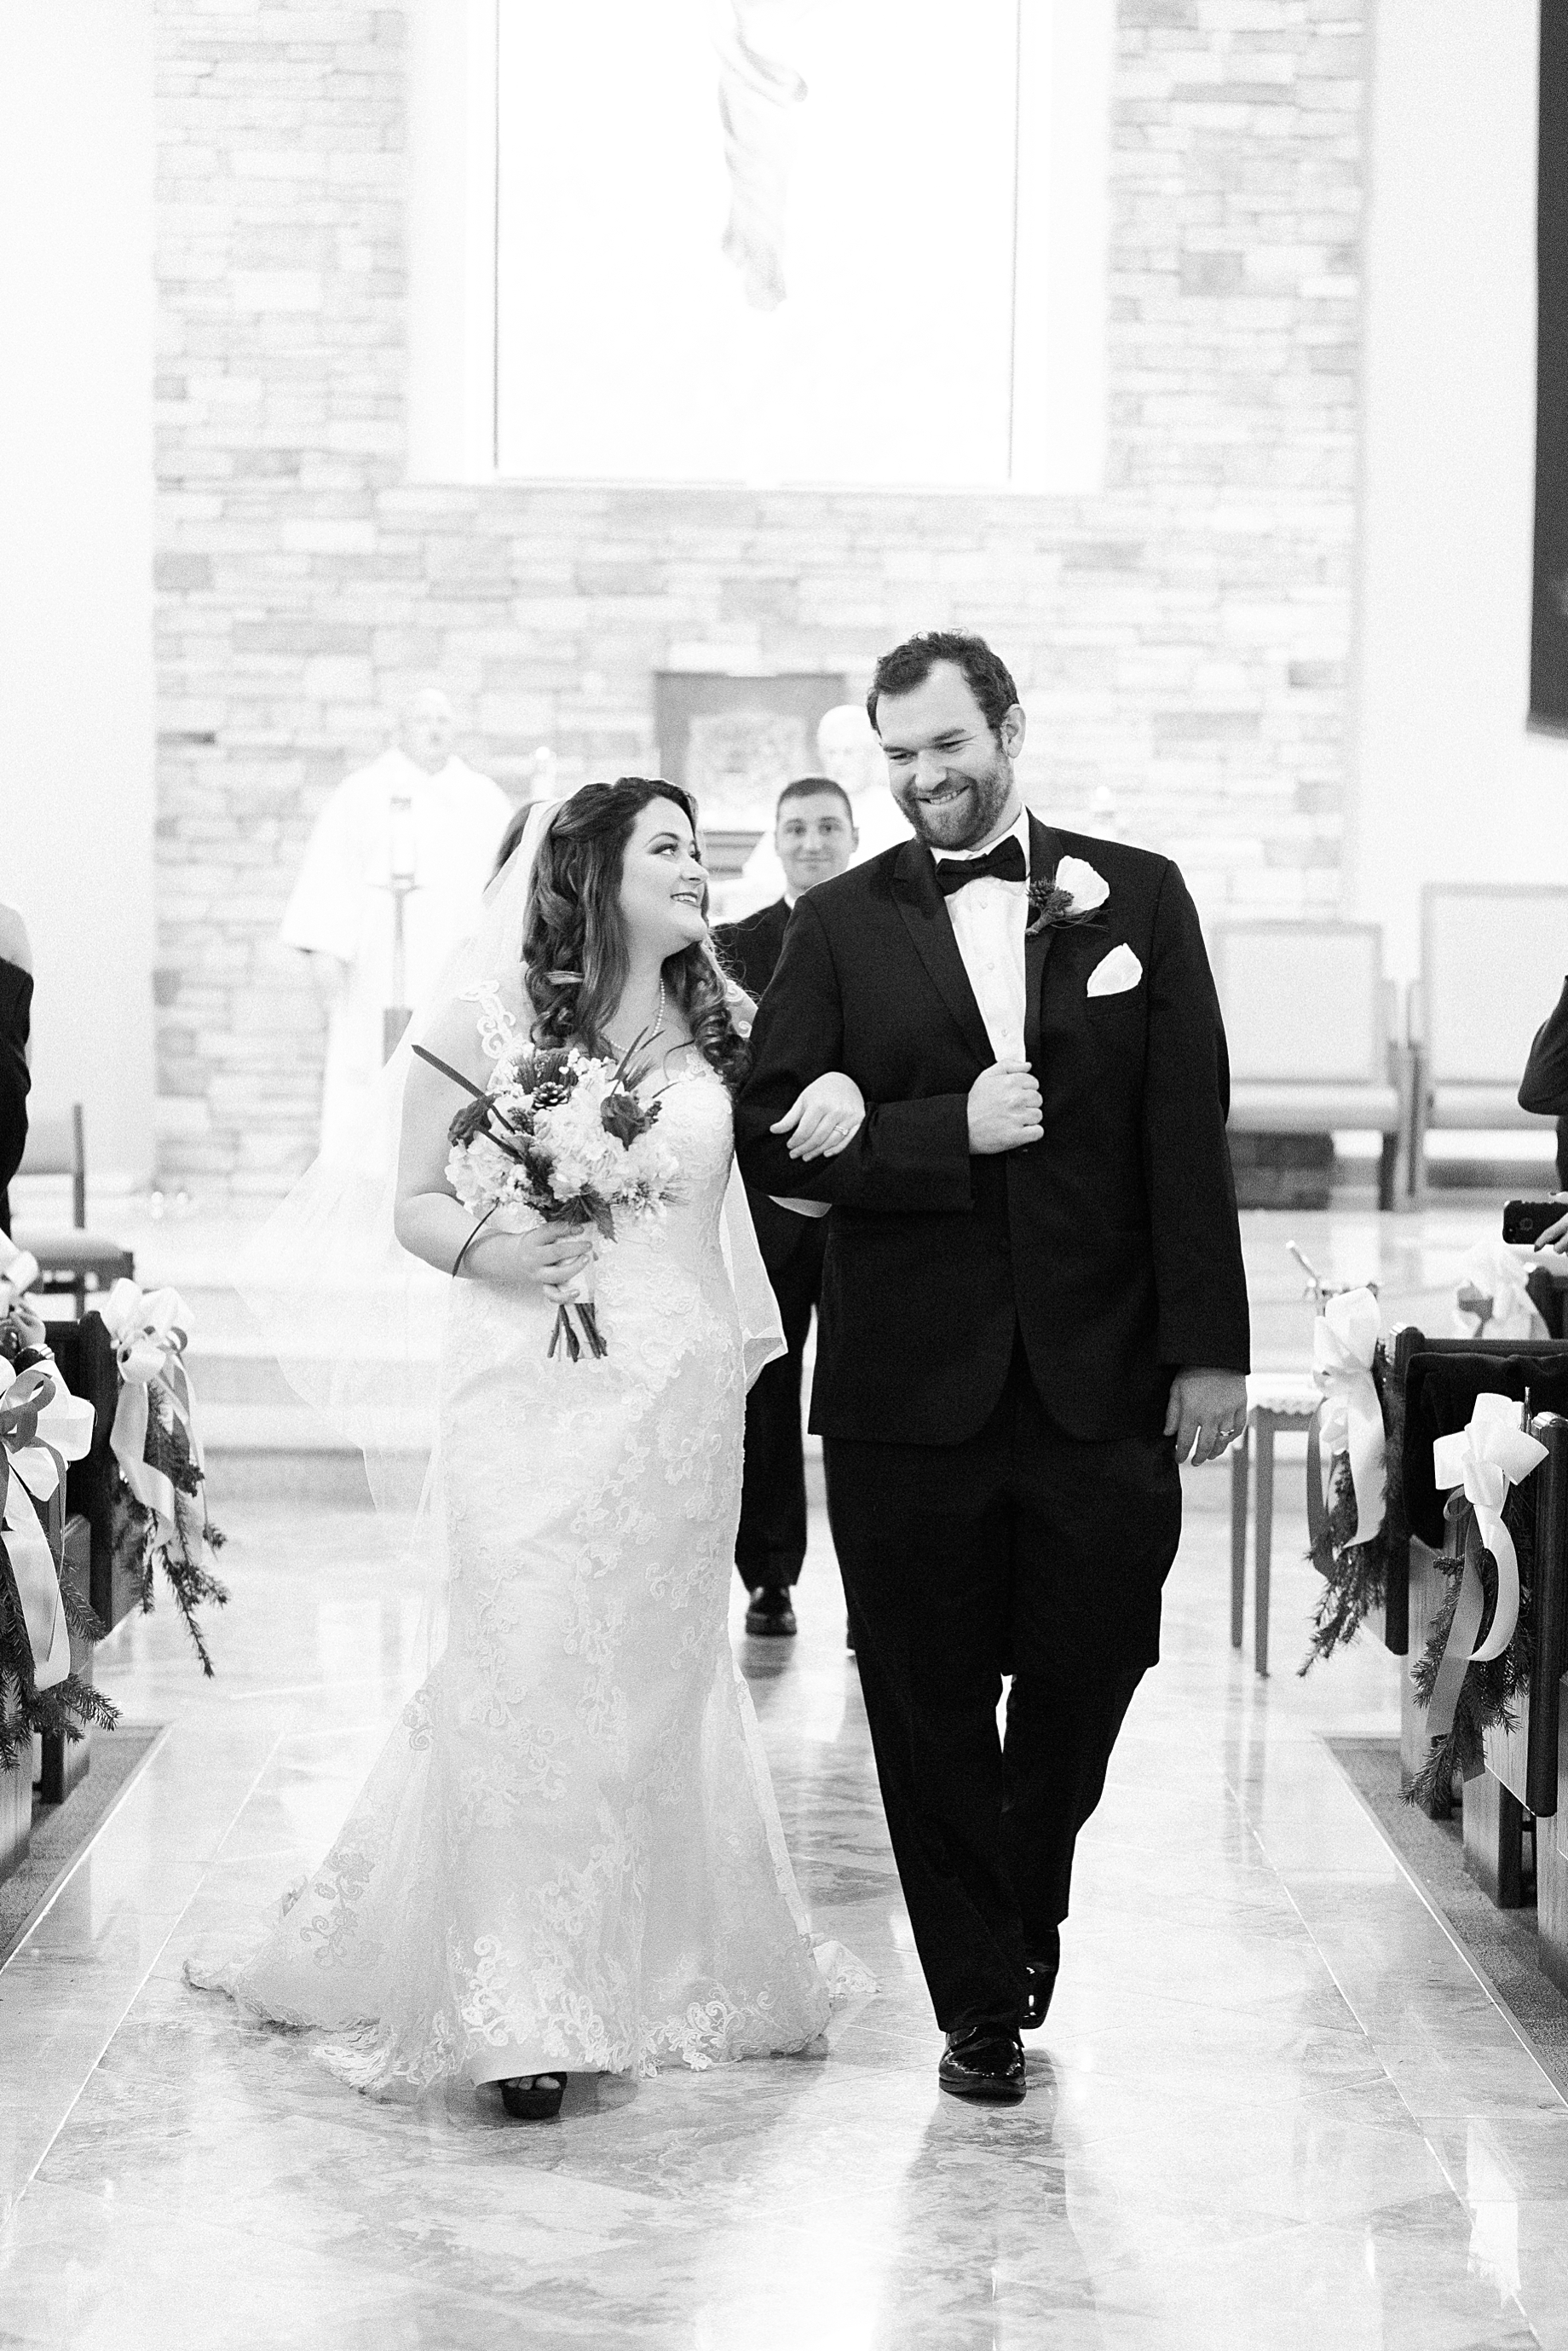 Philadelphia Winter Wedding Church Ceremony